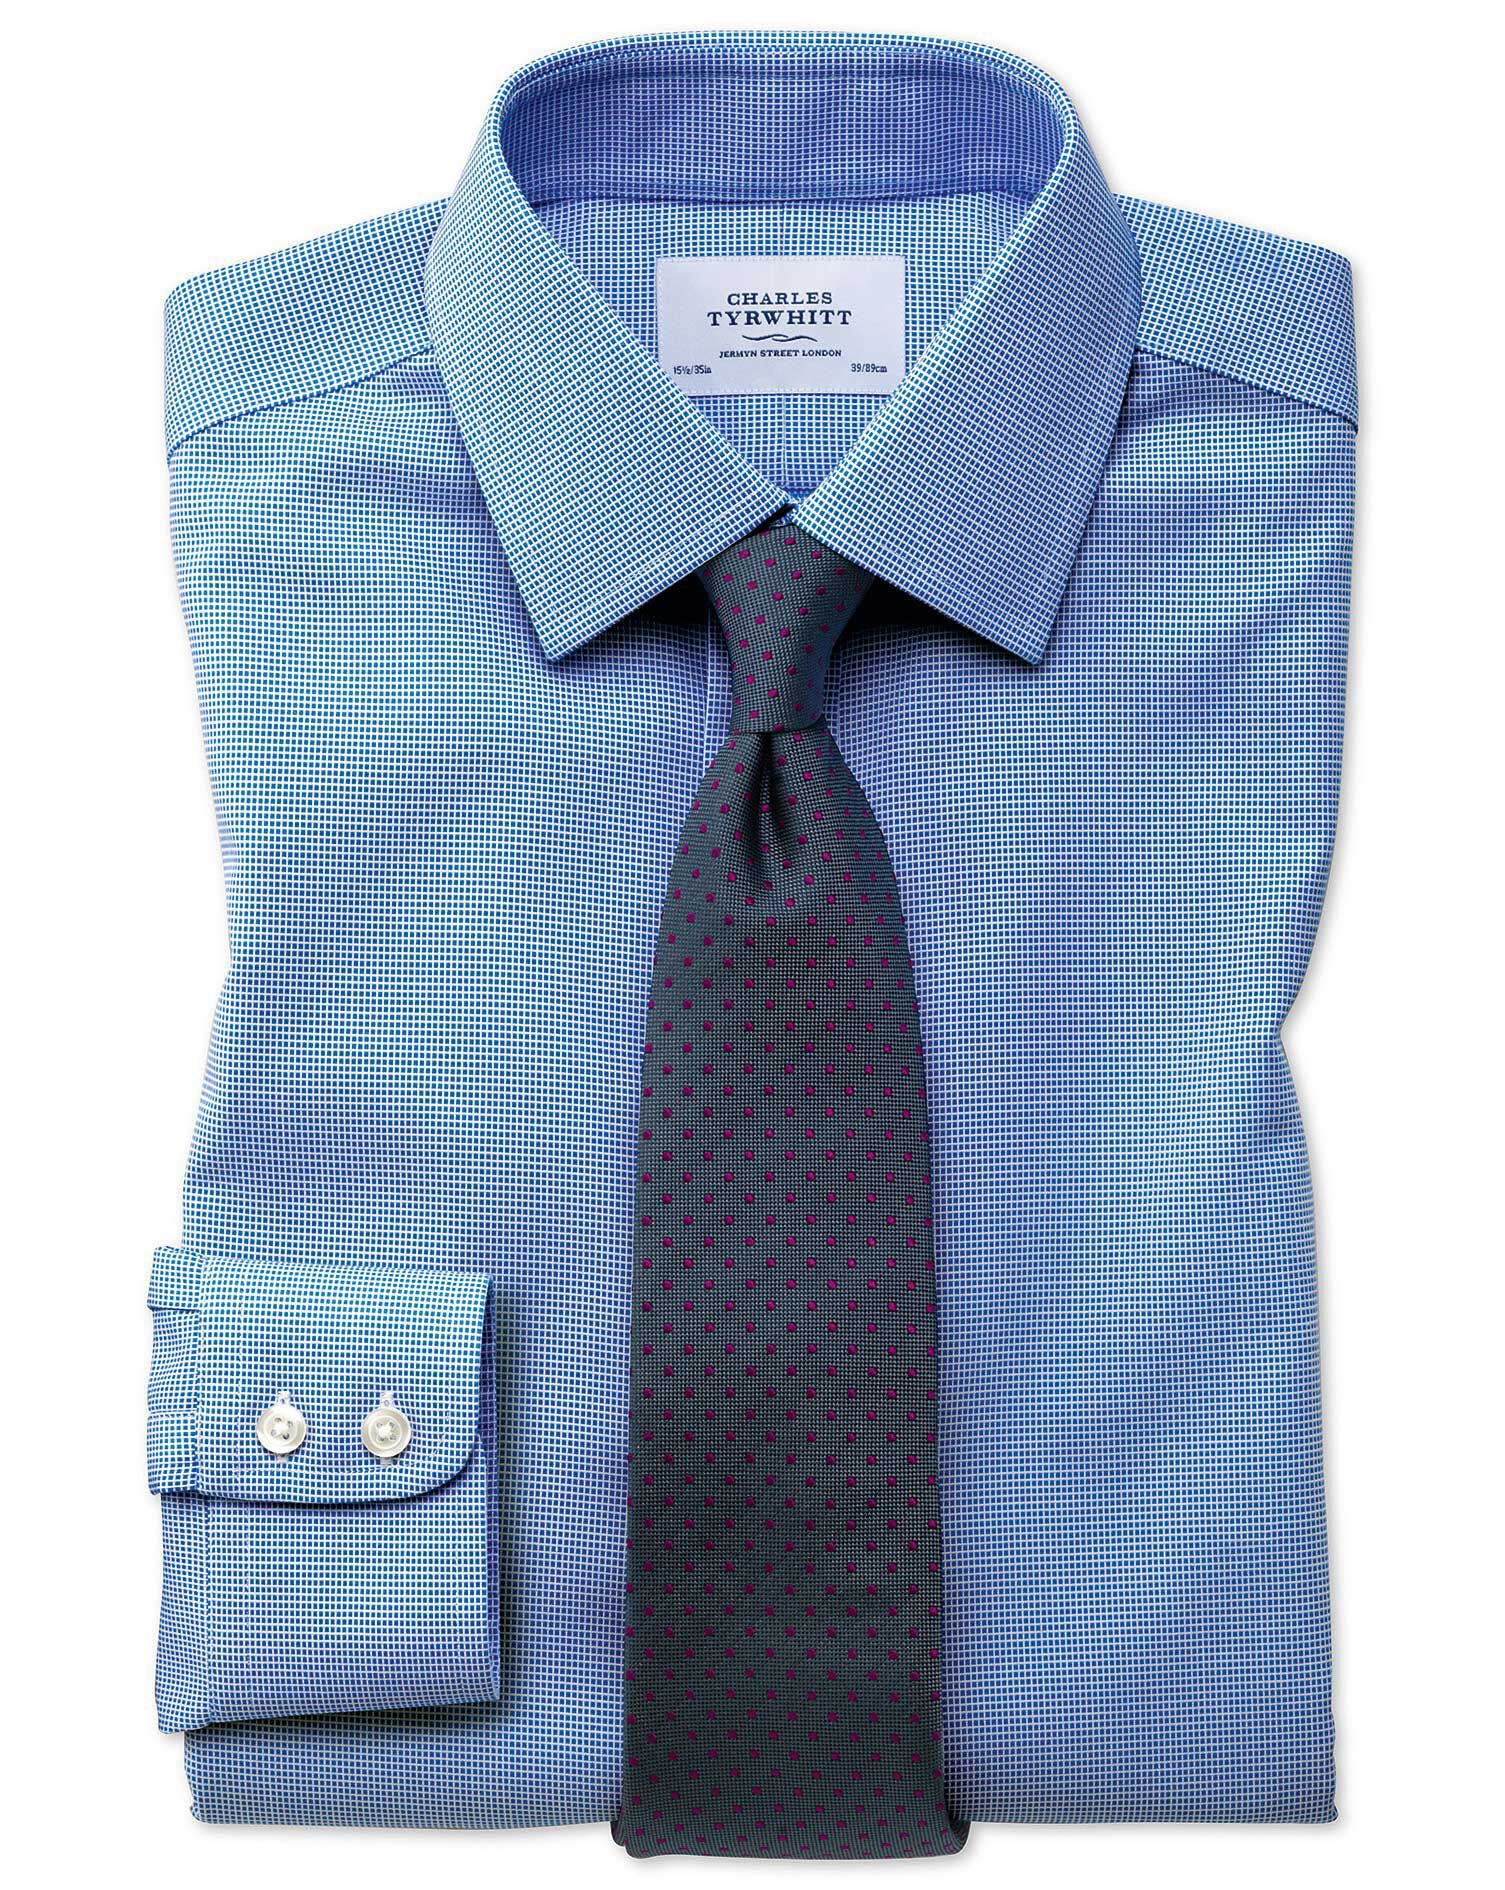 Extra Slim Fit Non-Iron Square Weave Blue Cotton Formal Shirt Single Cuff Size 16/38 by Charles Tyrw